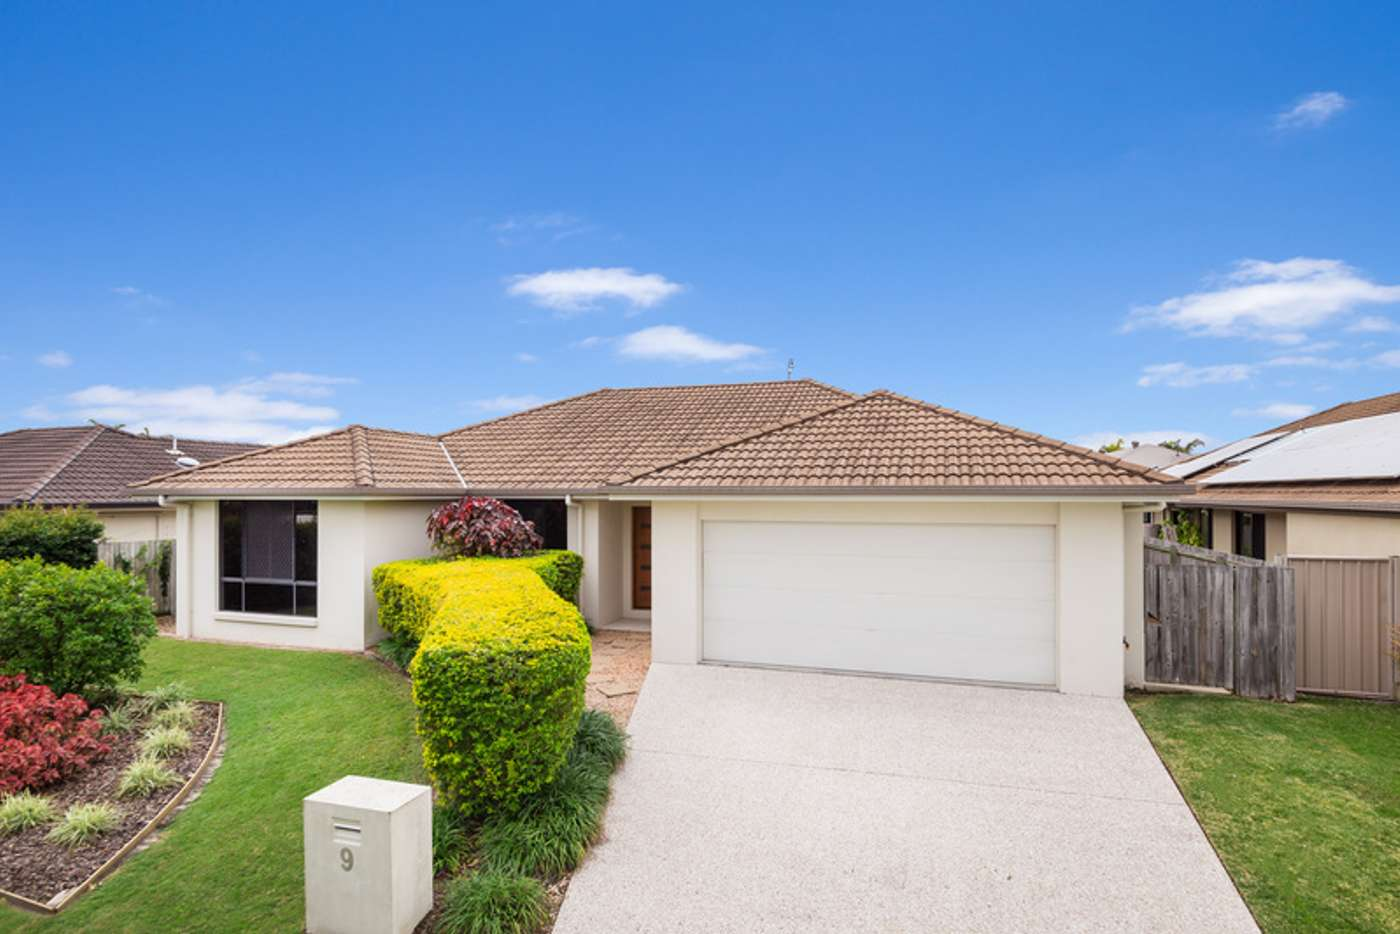 Main view of Homely house listing, 9 Tolman St, Sippy Downs QLD 4556